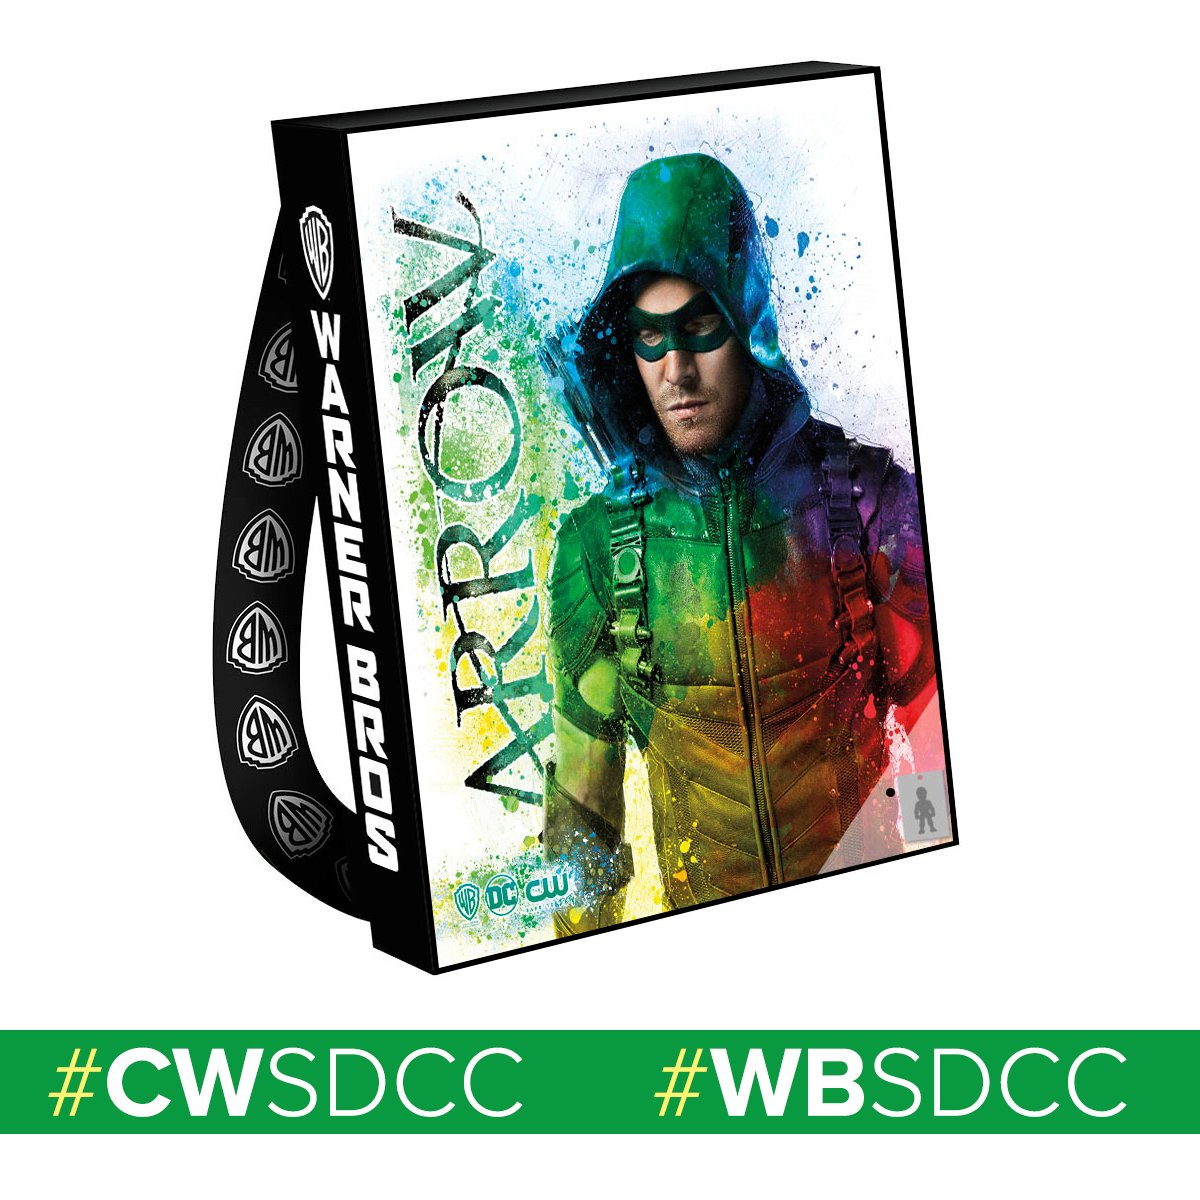 Heading to Comic-Con®? Make sure you look for the official #Arrow bag! #CWSDCC #WBSDCC https://t.co/TFMImgMRdt